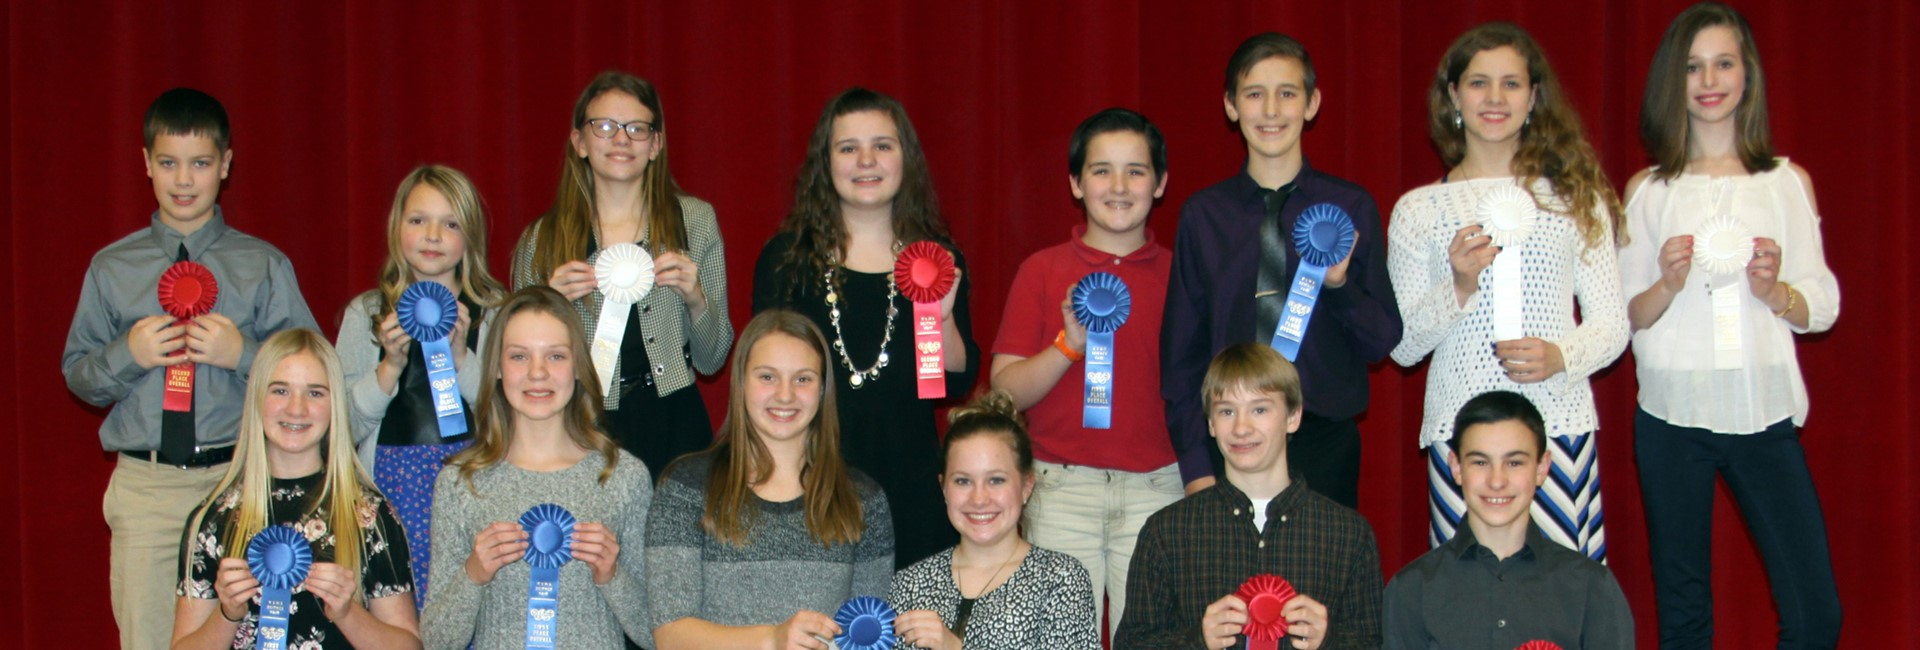 Kankakee Valley Middle School Science Award Winners